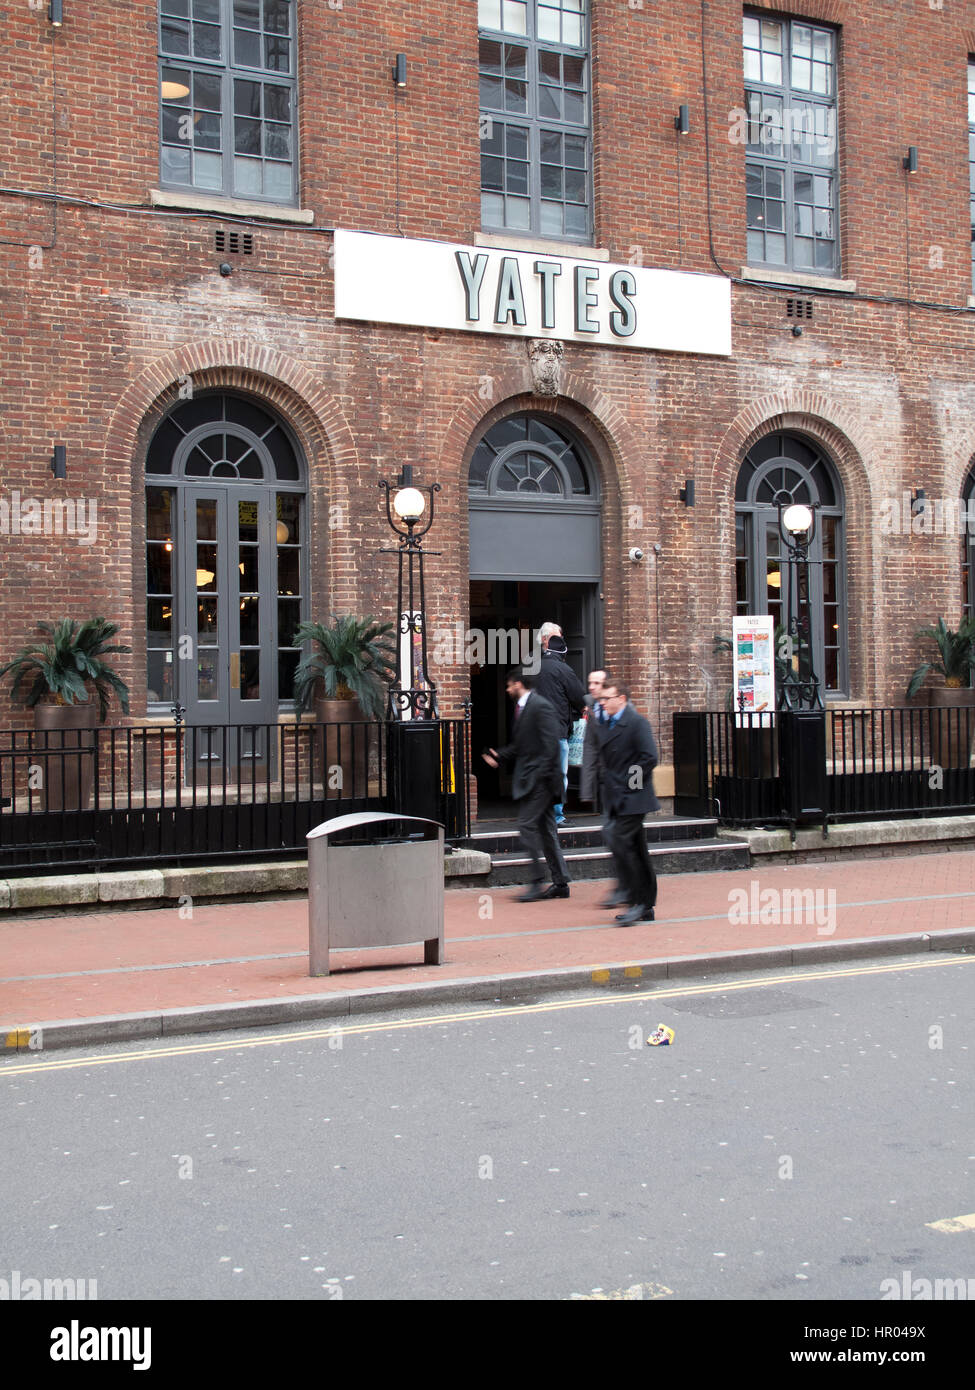 Yates public house, Britain oldest pub chain, founded as Yates Wine Lodge in 1884 by Peter Yates Stock Photo